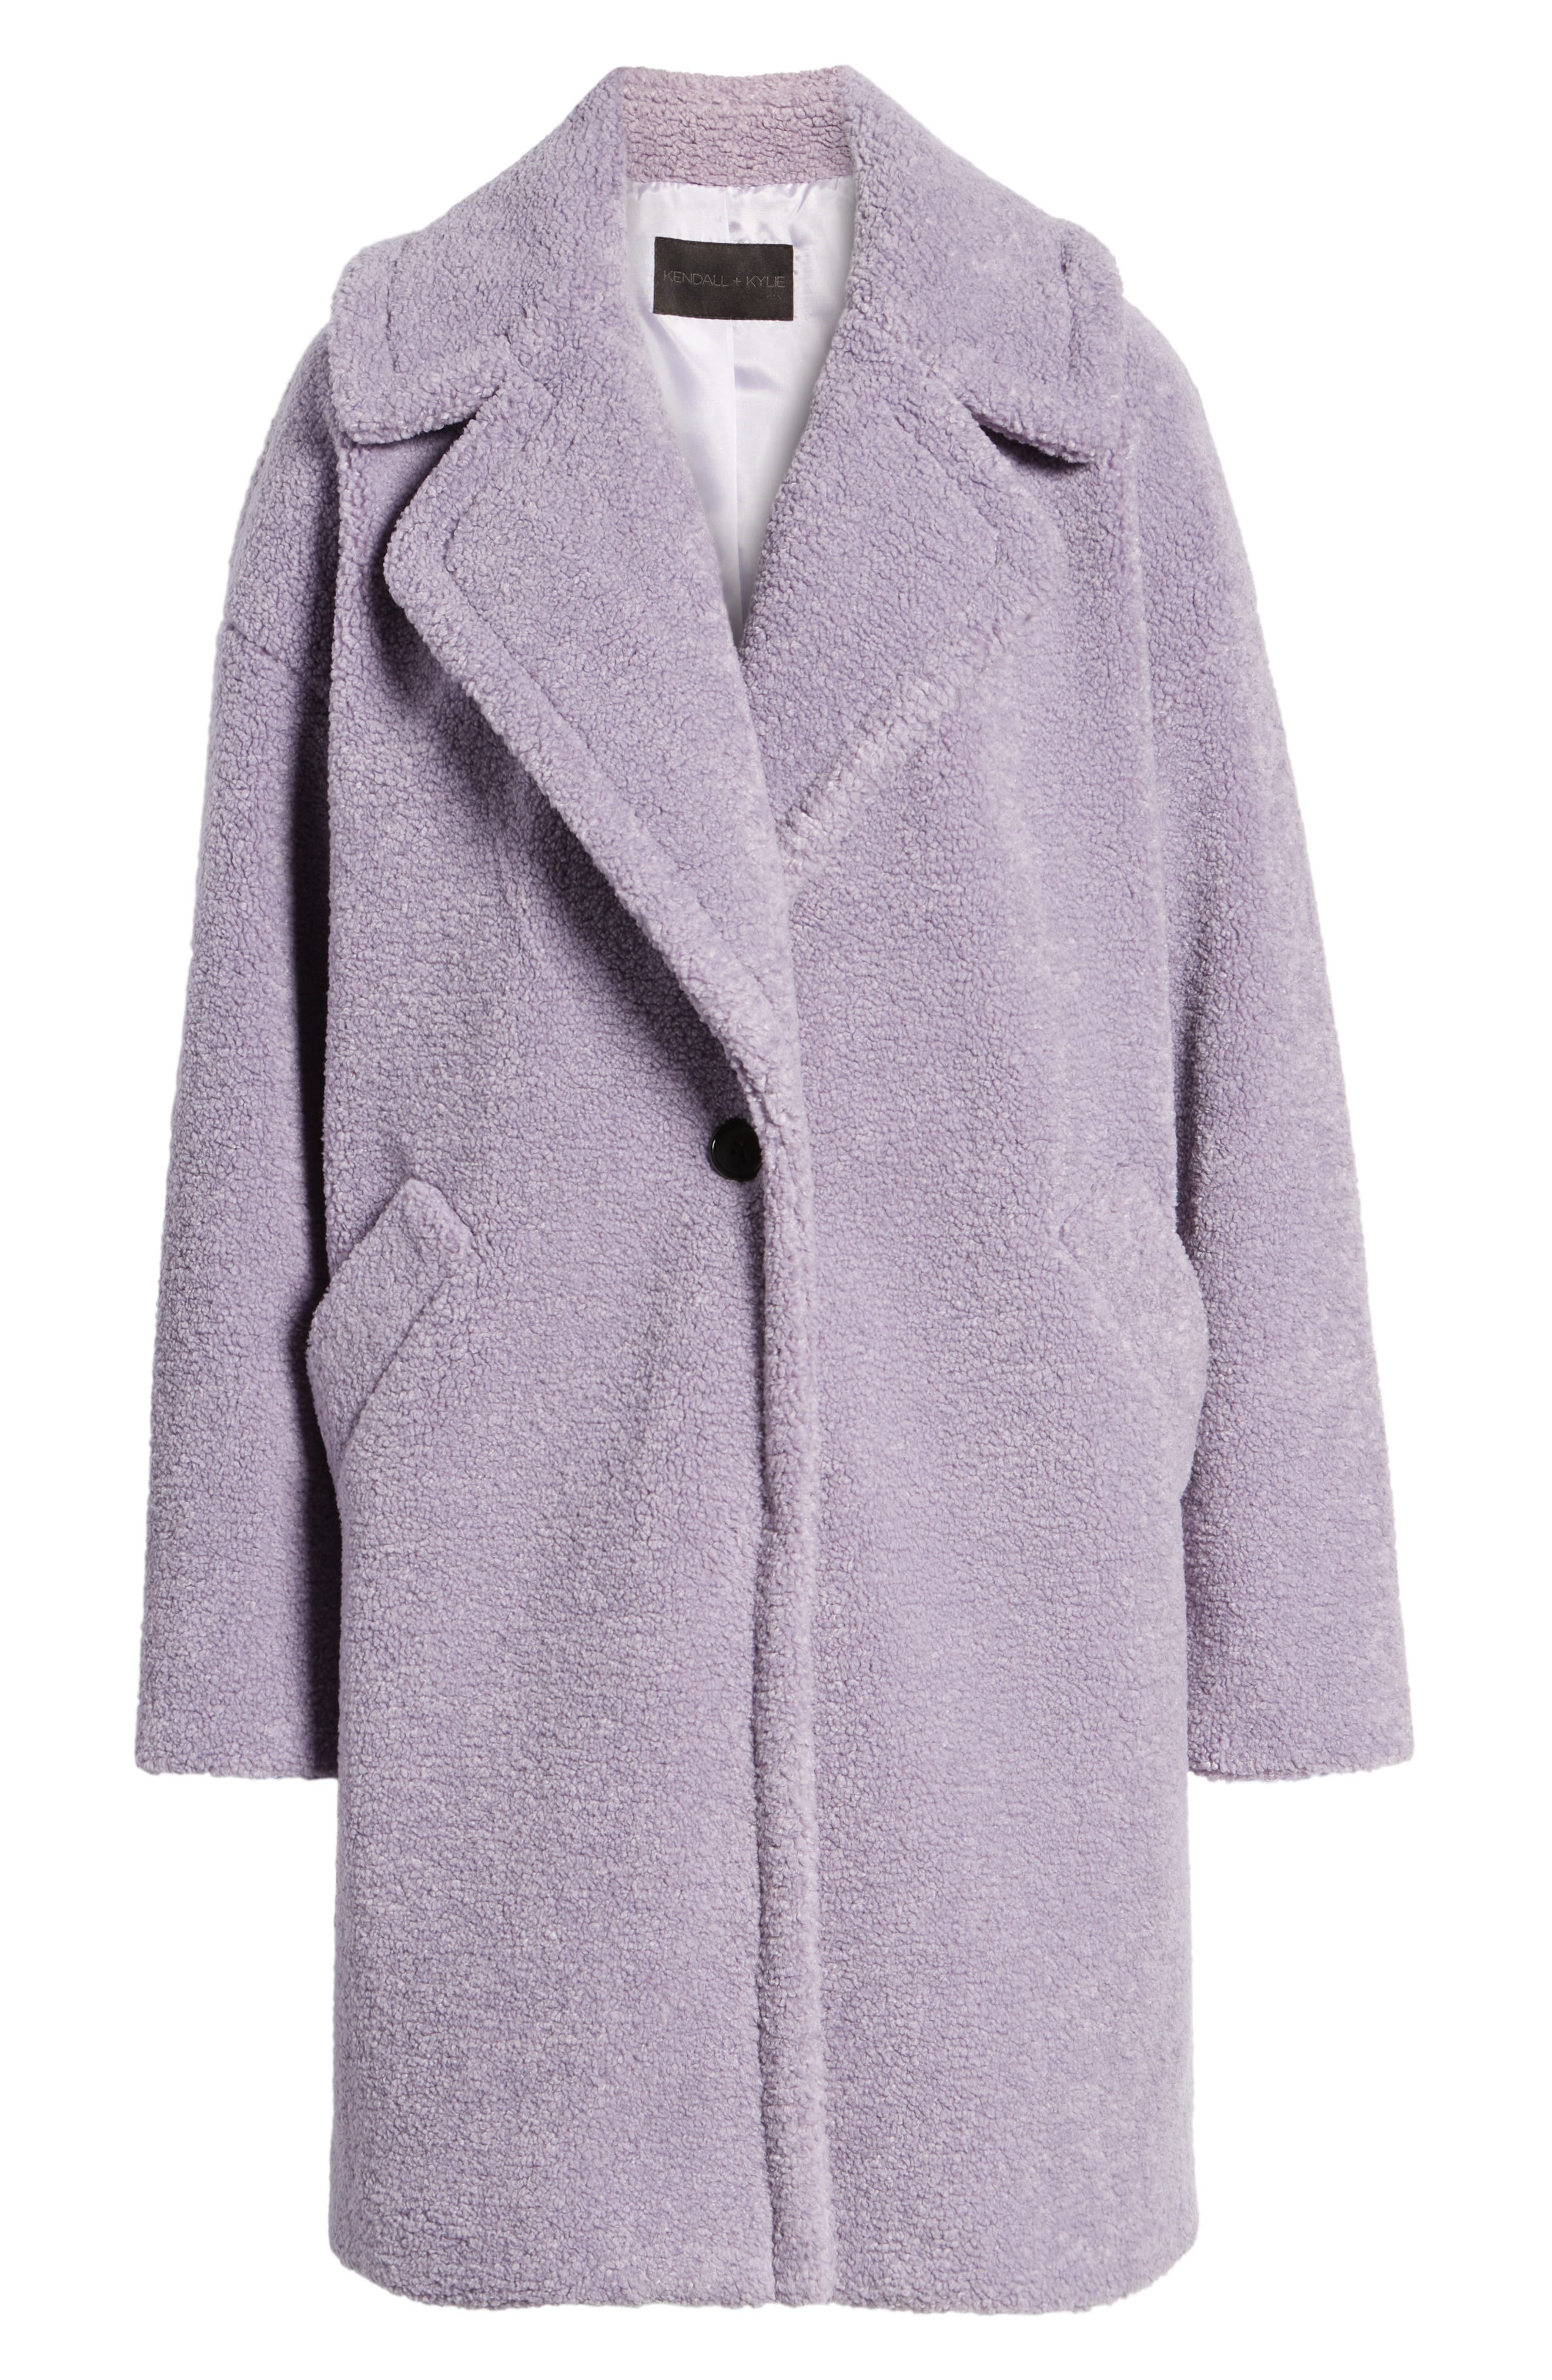 Faux Fur Teddy Coat,                             Alternate thumbnail 5, color,                             LILAC